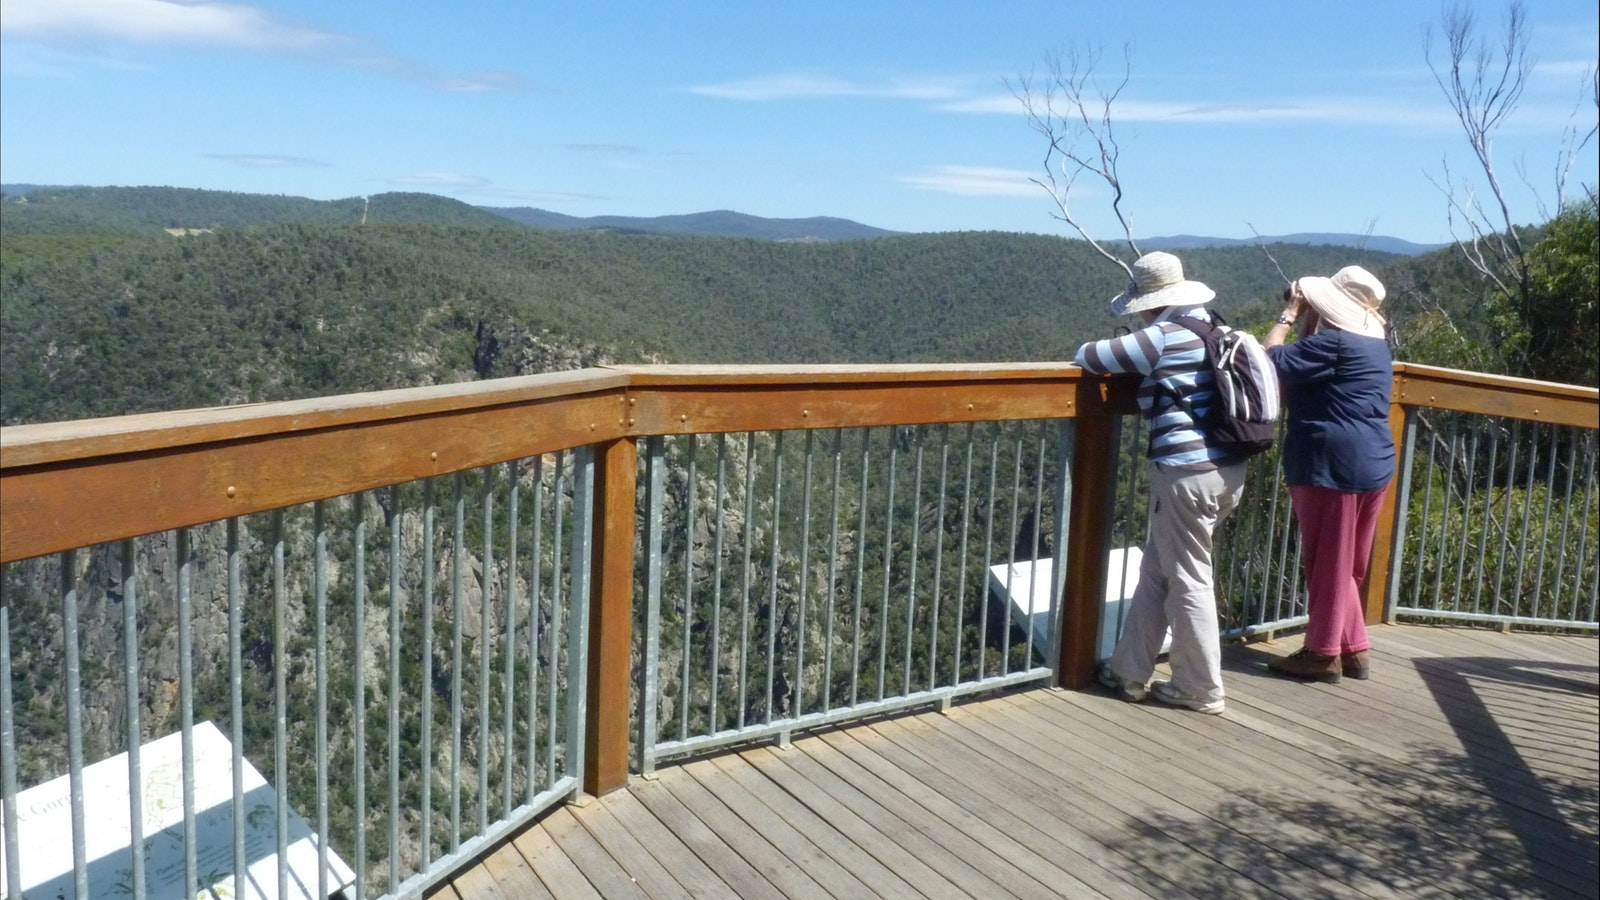 Walk to lookout over Little River Gorge